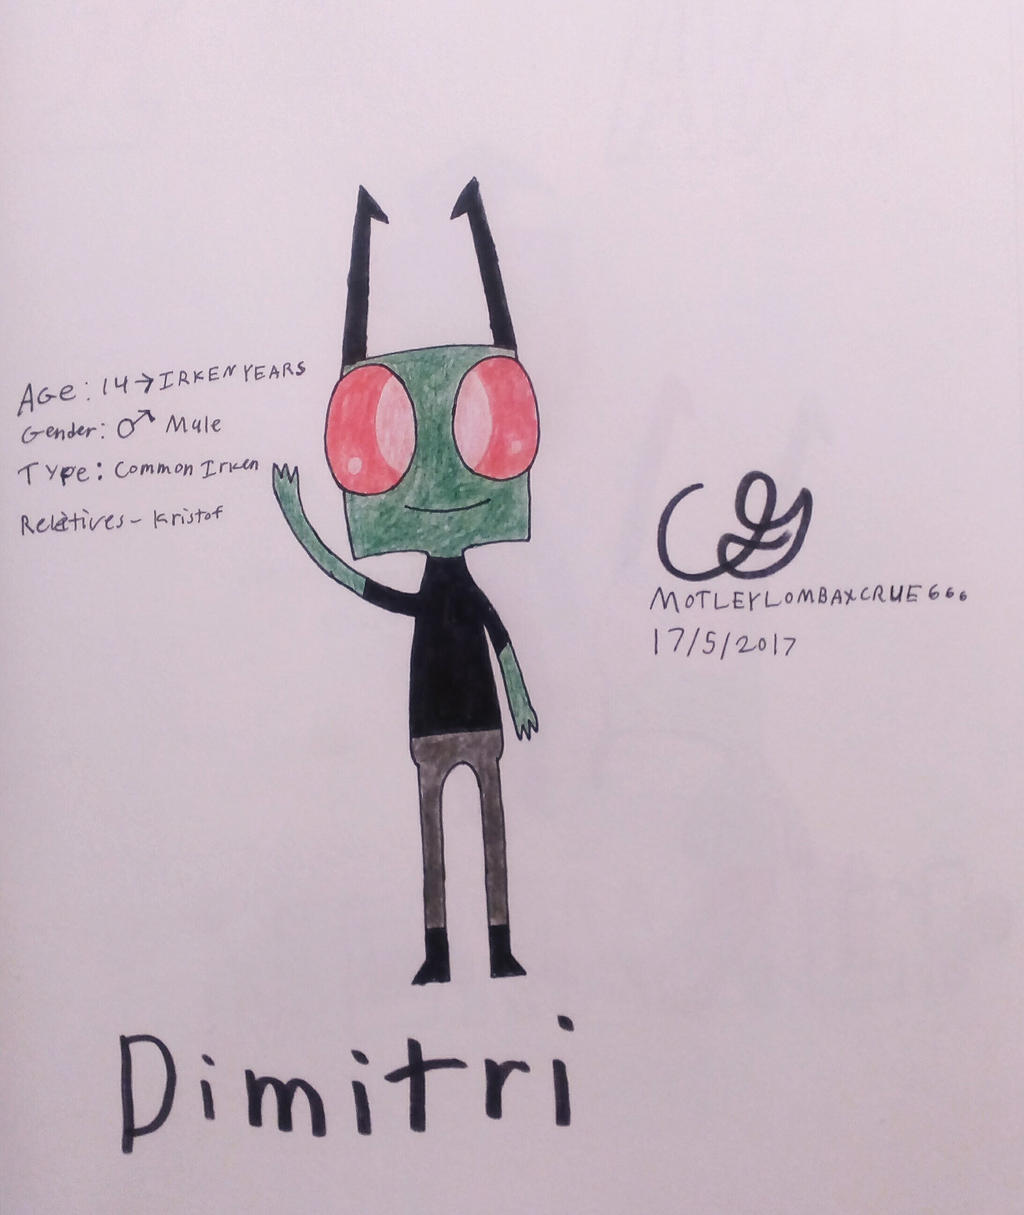 My new OC, Dimitri! by MOTLEYLOMBAXCRUE666